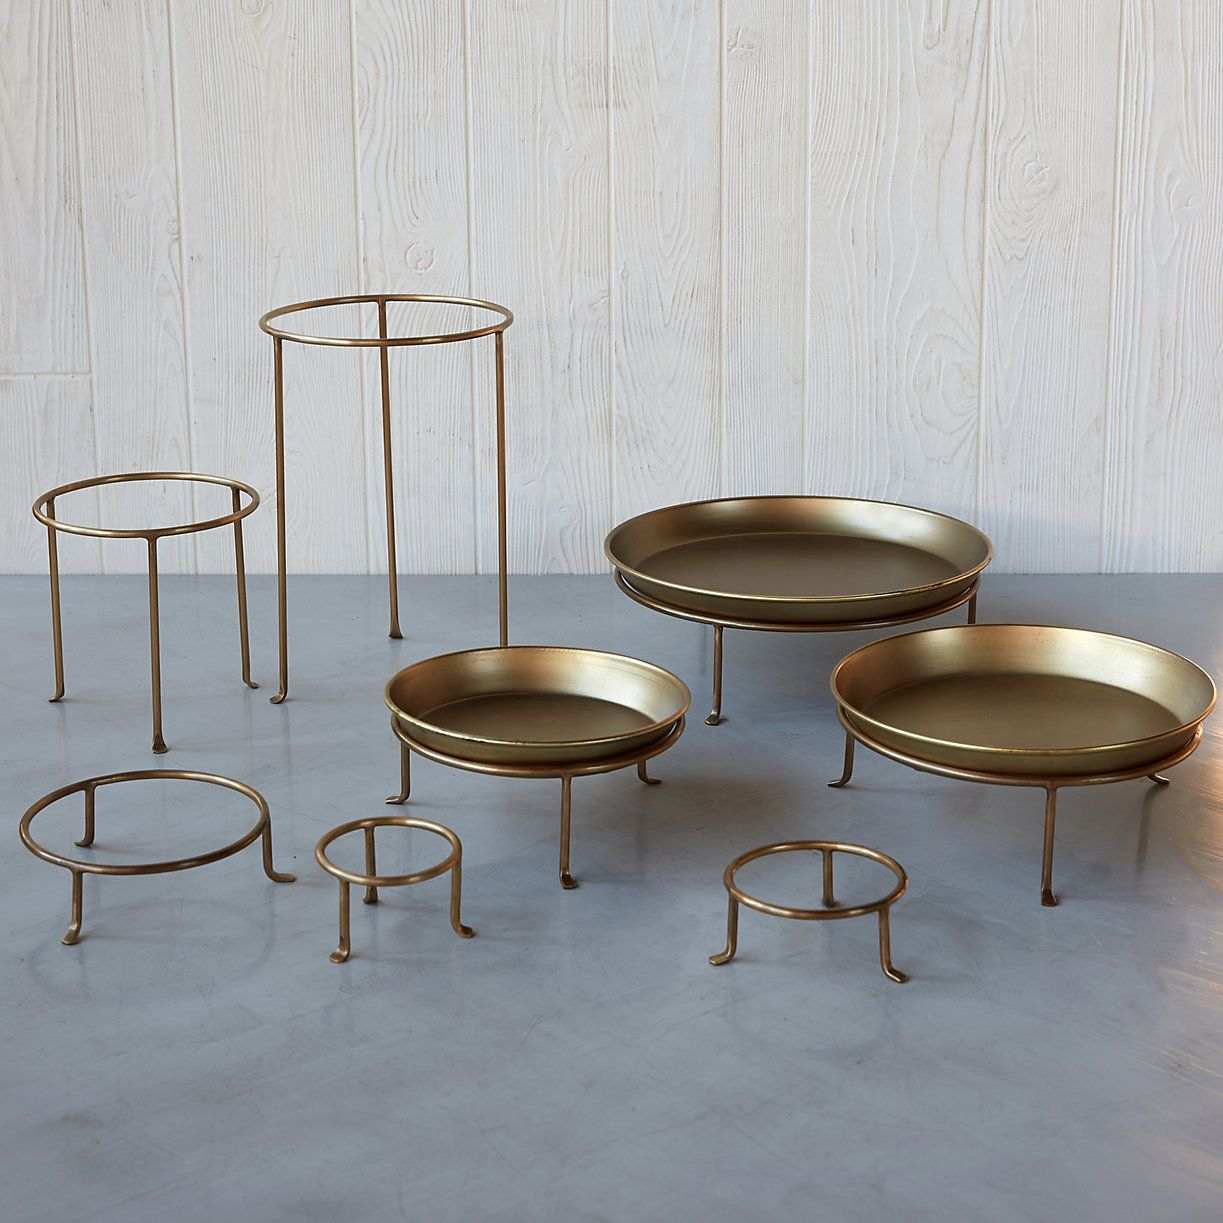 Solid Brass Plant Stand Tall Decor Coffee Table Plant Stand